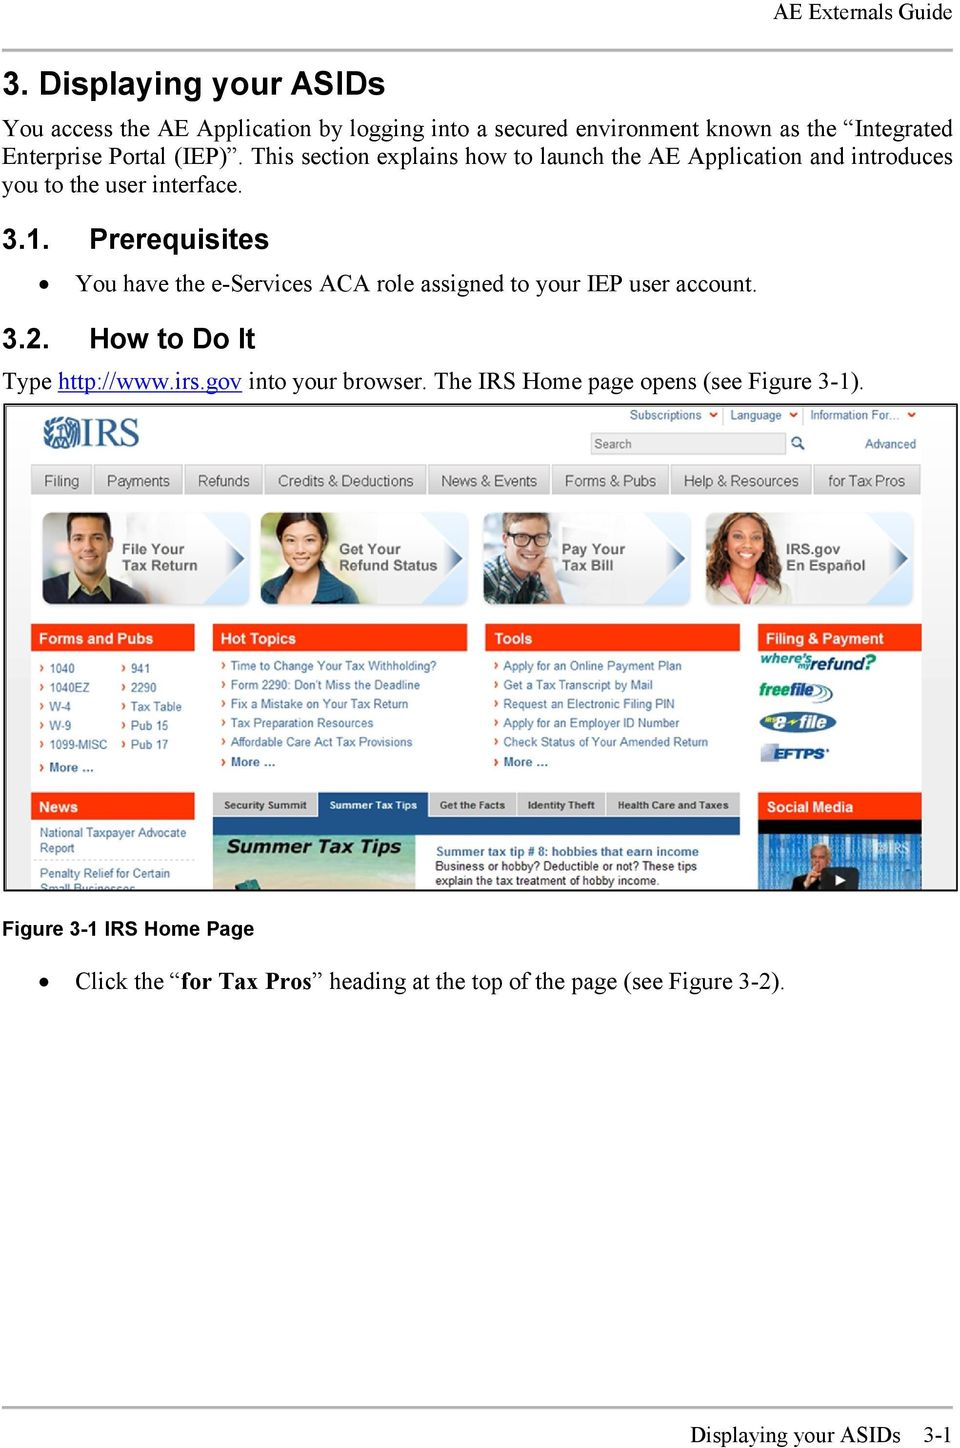 Prerequisites You have the e-services ACA role assigned to your IEP user account. 3.2. How to Do It Type http://www.irs.